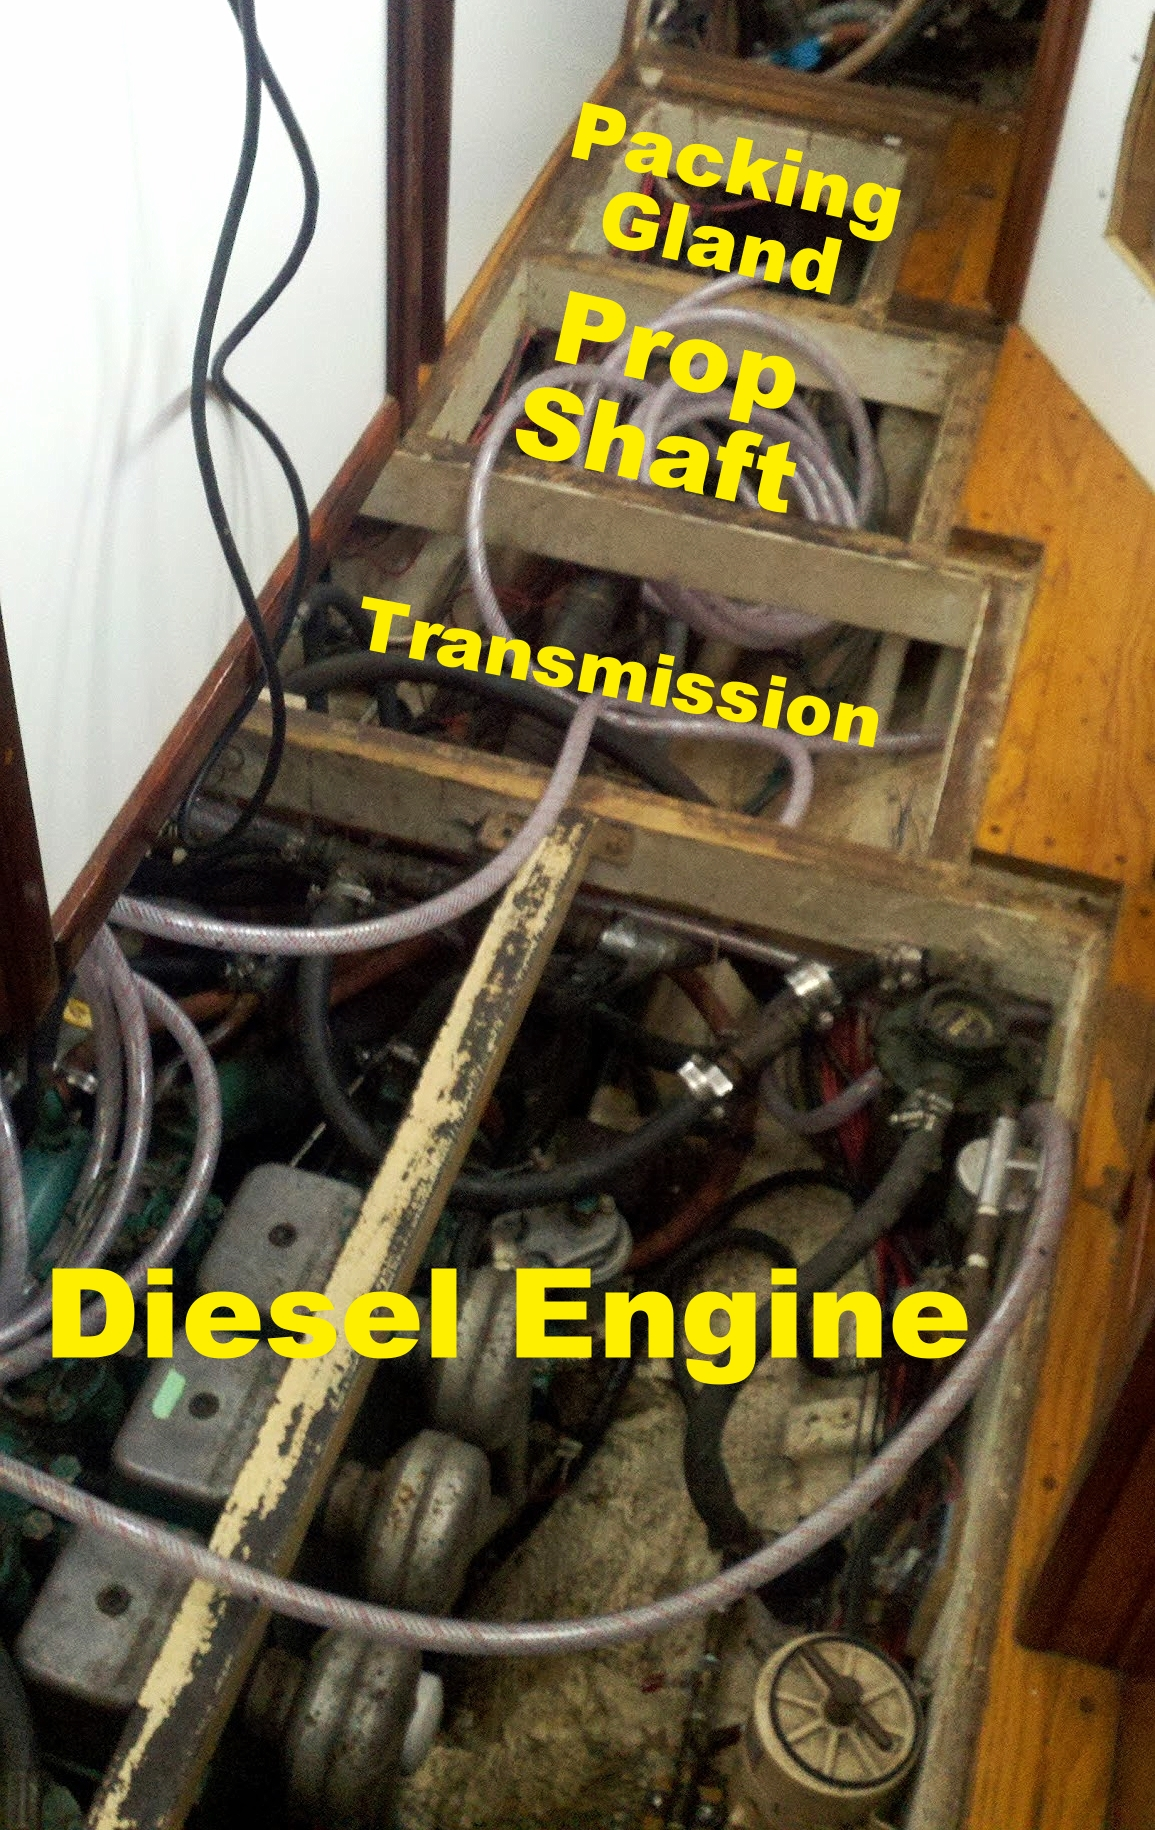 The Bottom square holds the engine The Second square holds the transmission The Third square holds the shaft The Fourth square holds the packing gland